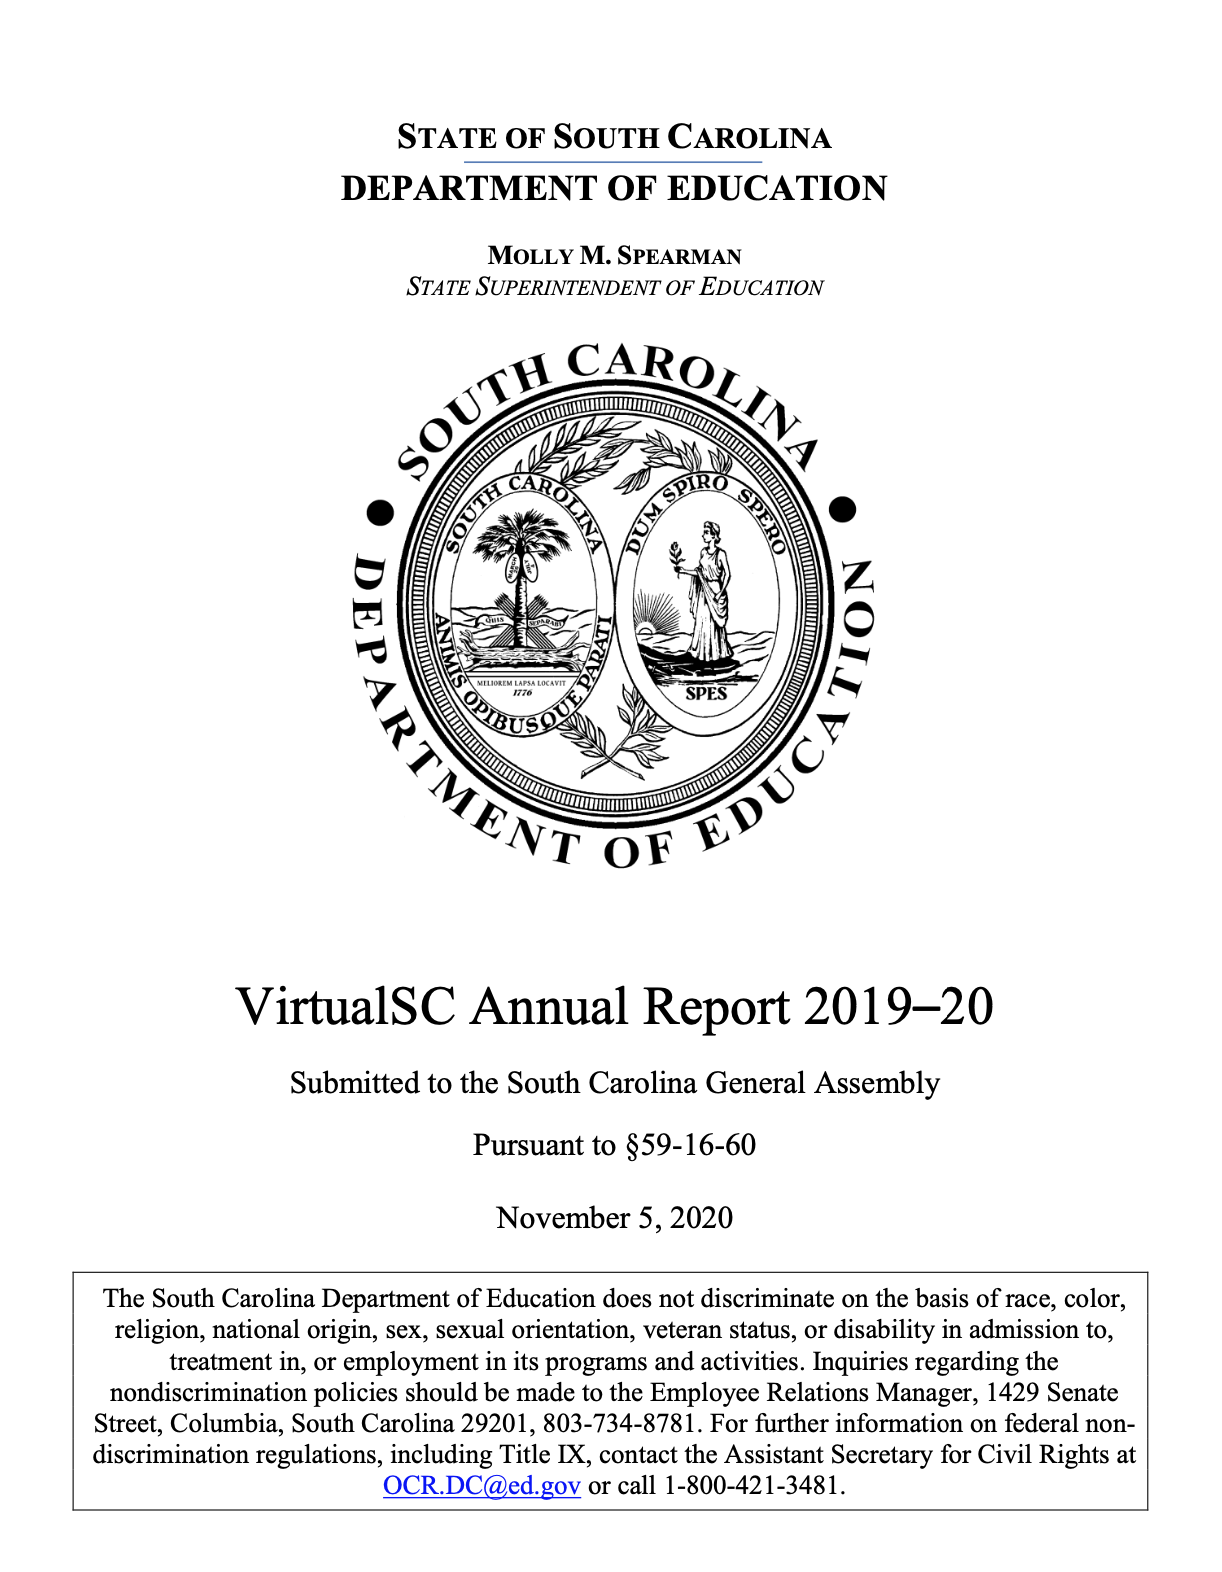 VirtualSC Annual Report 2019-20